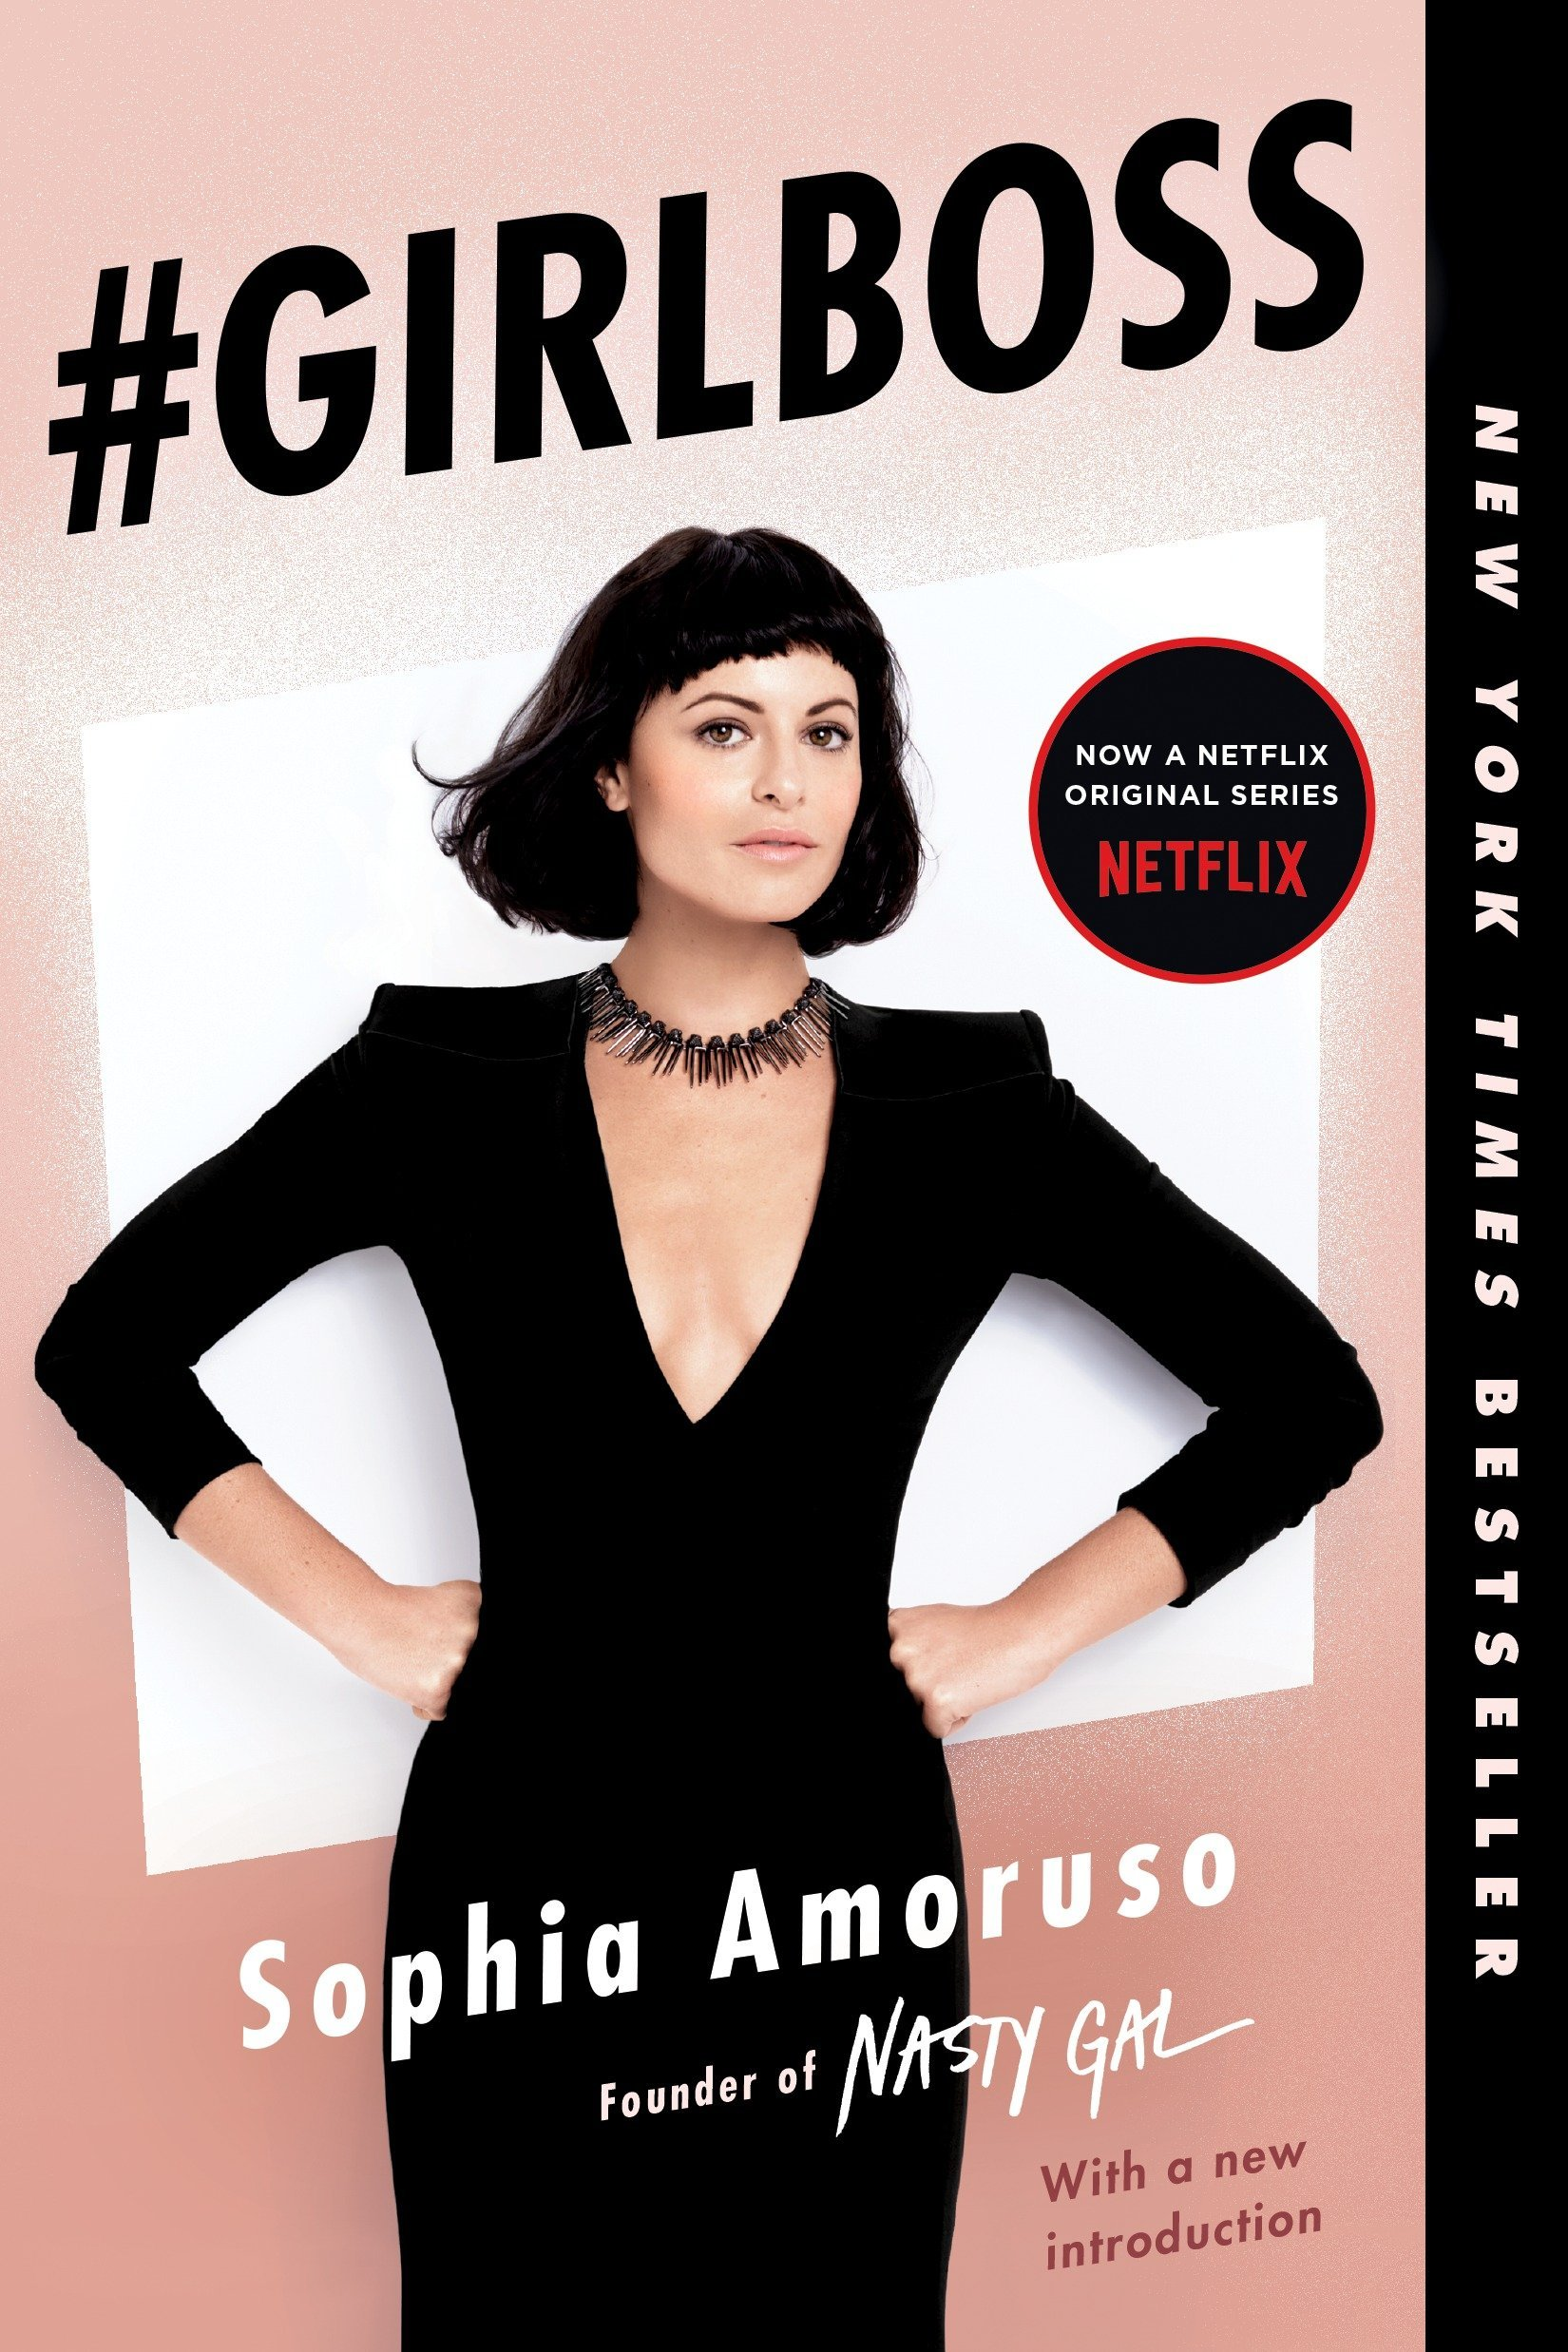 girlboss-book-cover.jpg